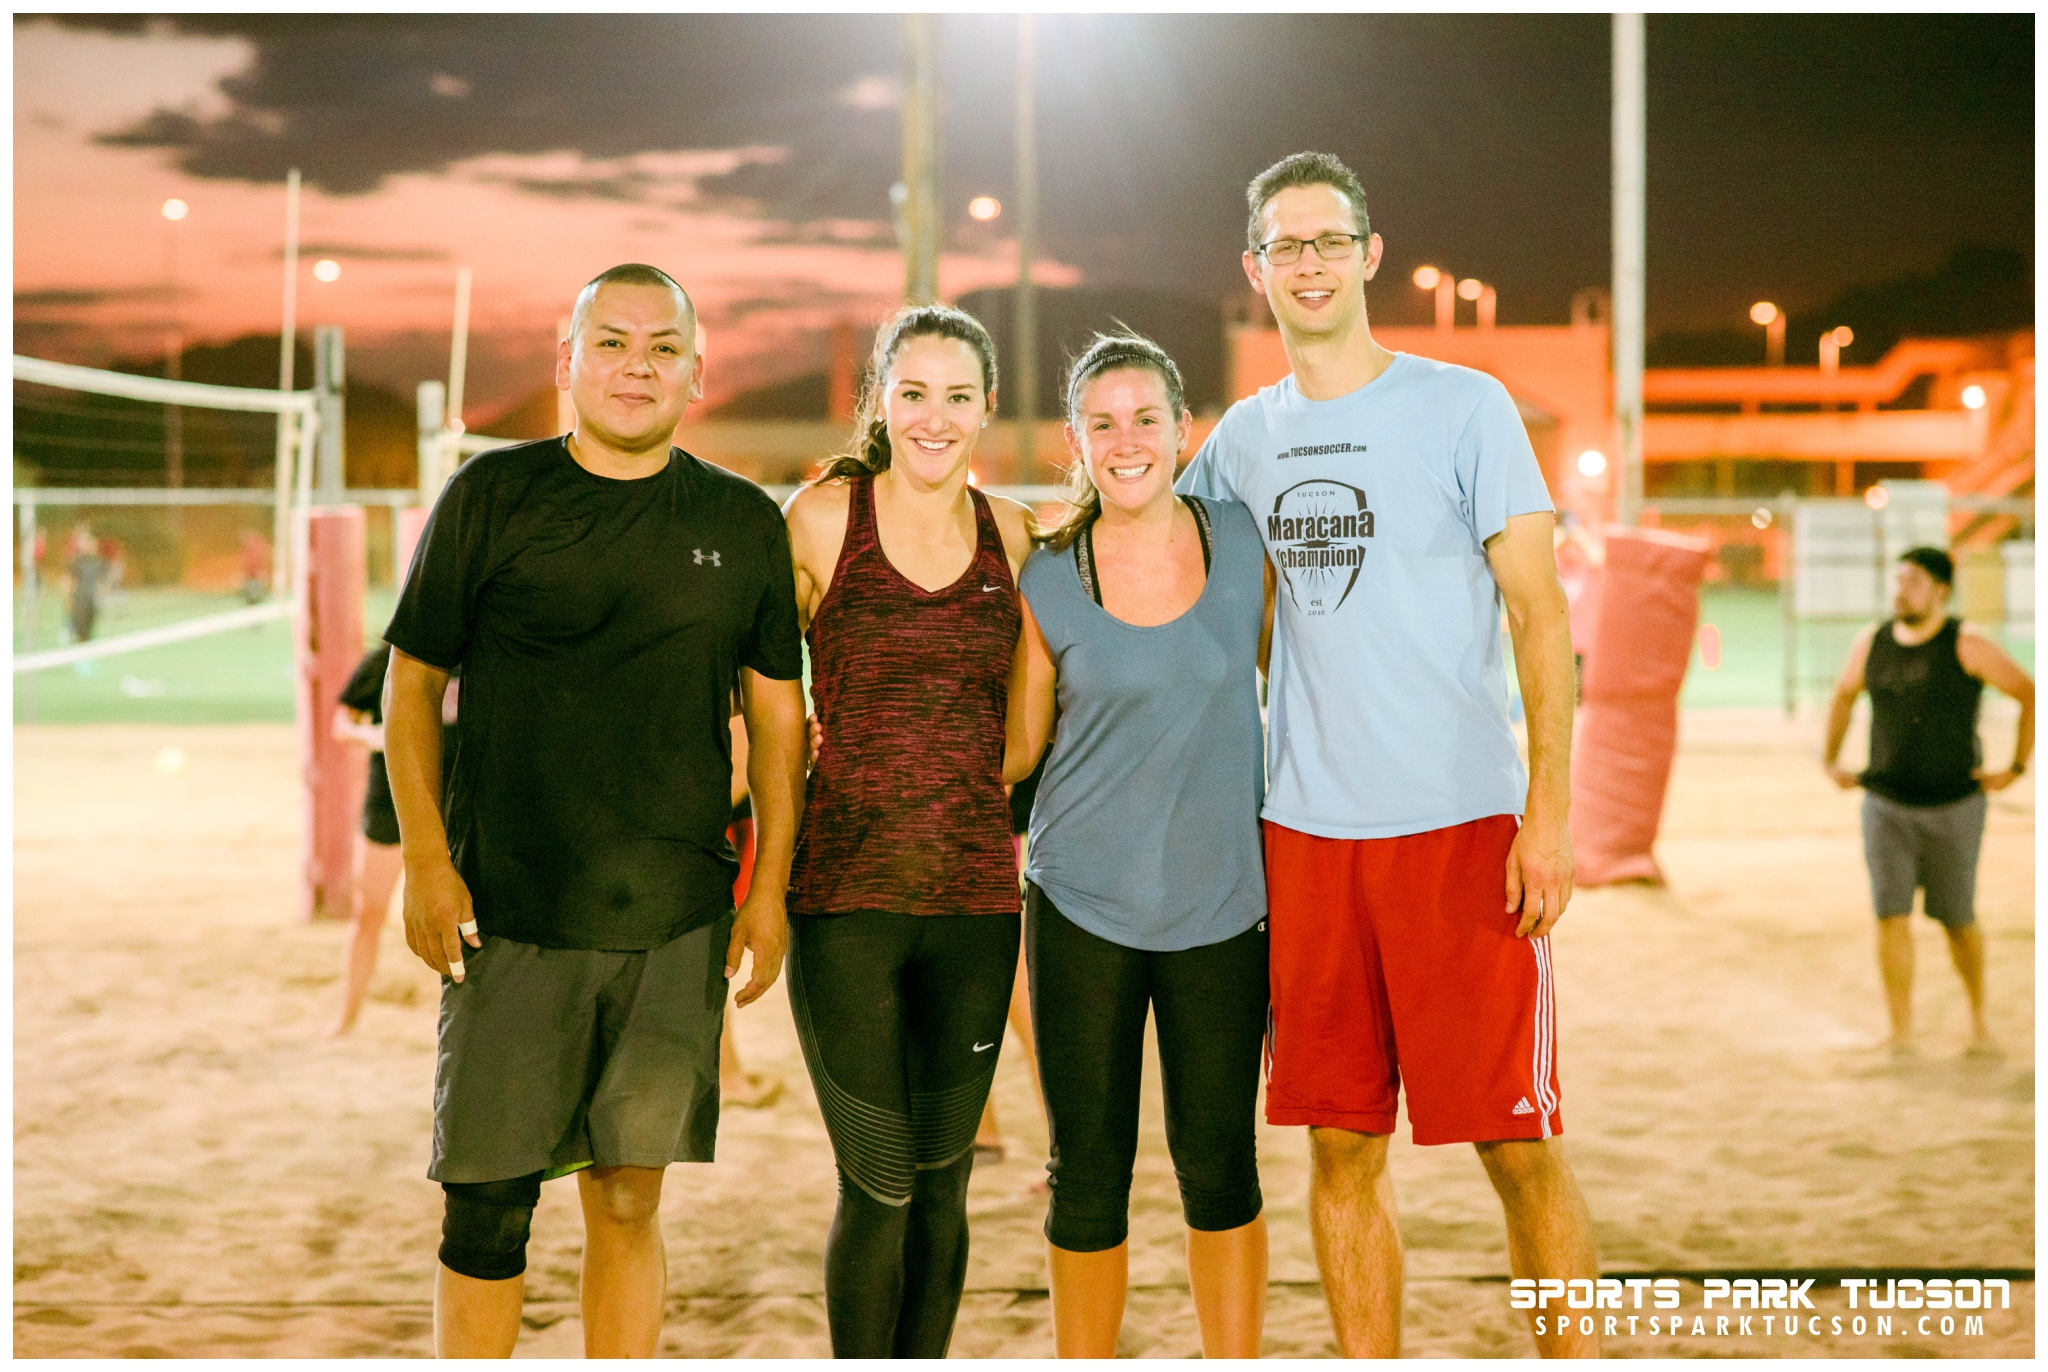 Volleyball Mon Co-ed 4 v 4 - Gold, Team: Notorious D.I.G.